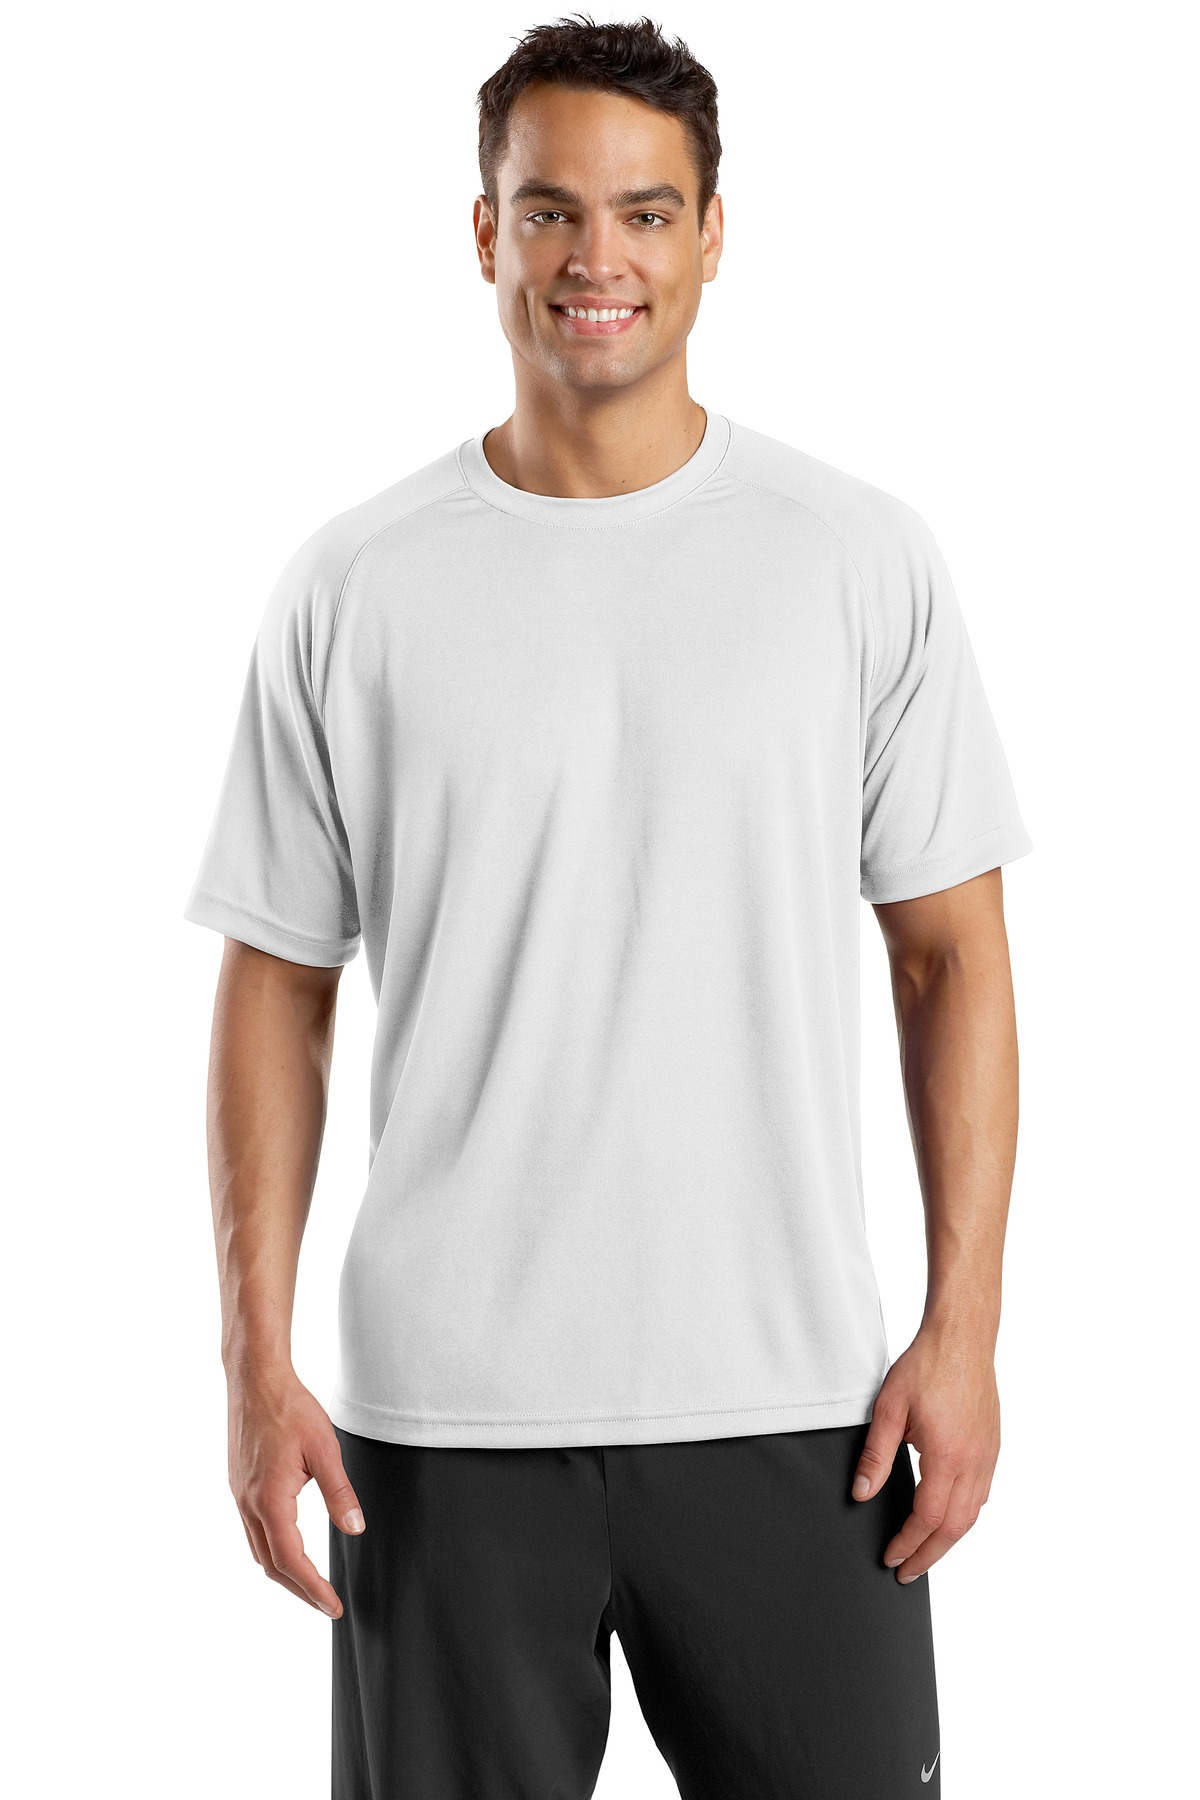 Plain white t shirts front and back the for Plain t shirt model